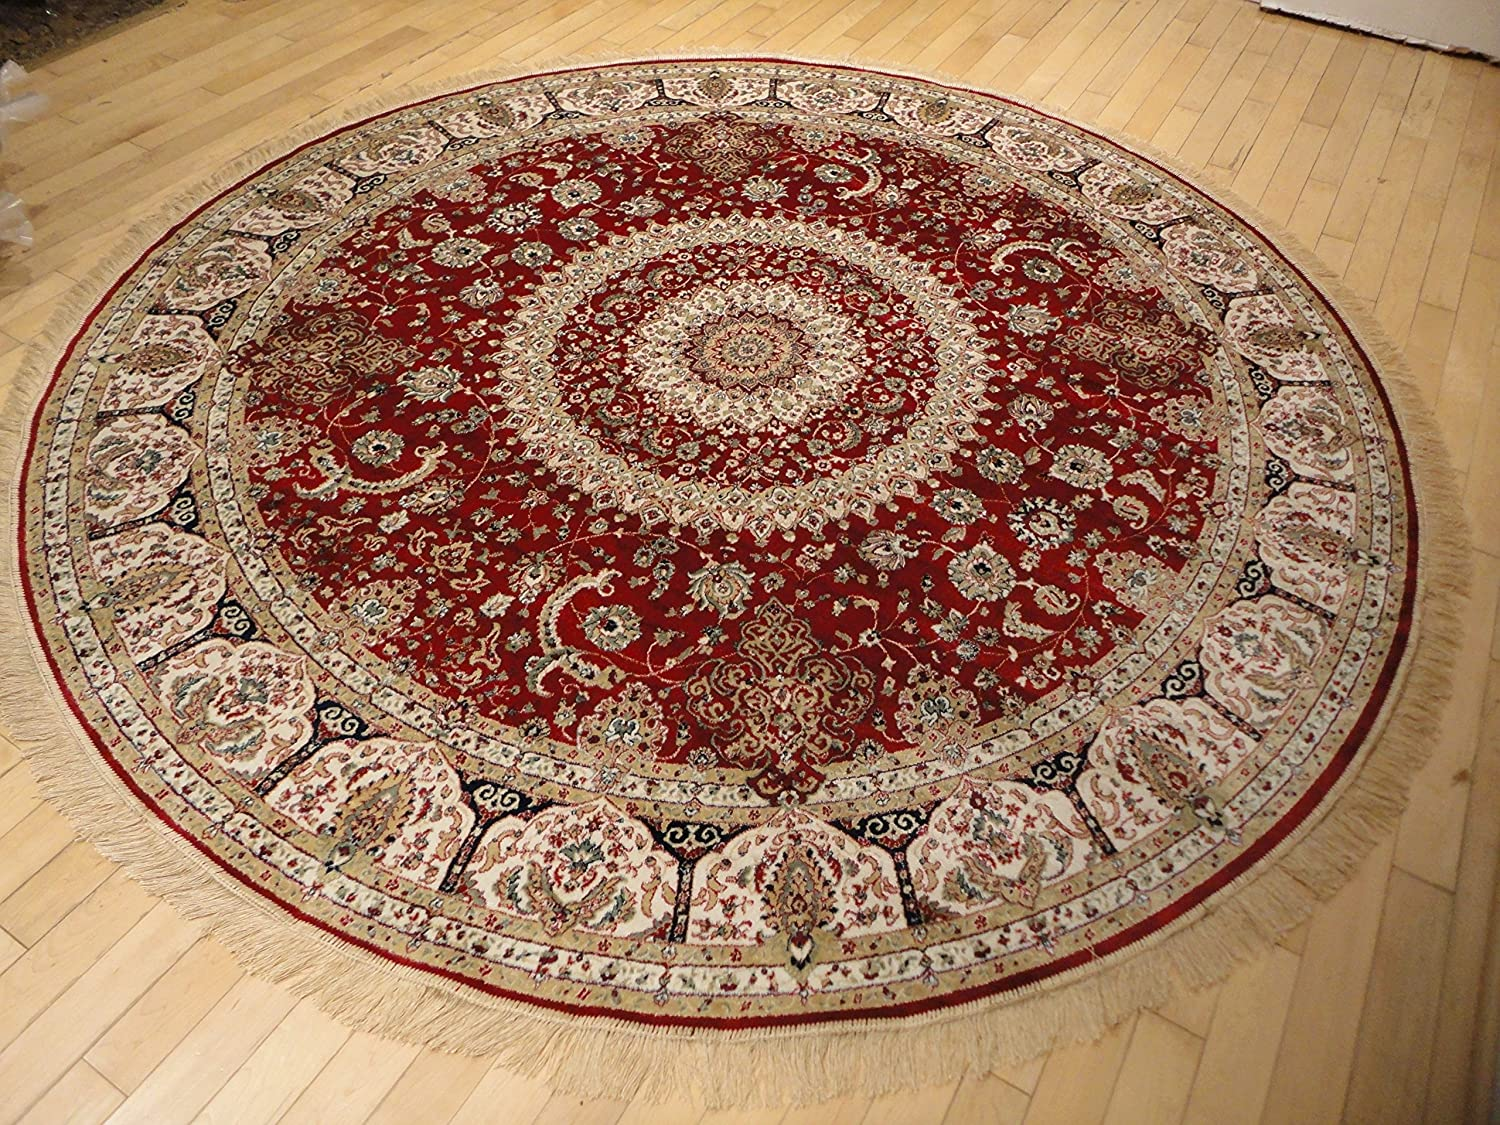 Amazon.com: Stunning Silk Persian Area Rugs Traditional Design Red Tabriz  6x6 Round Shape Rug Red Circle Rugs Red Silk Traditional Round Rugs Living  Room ...